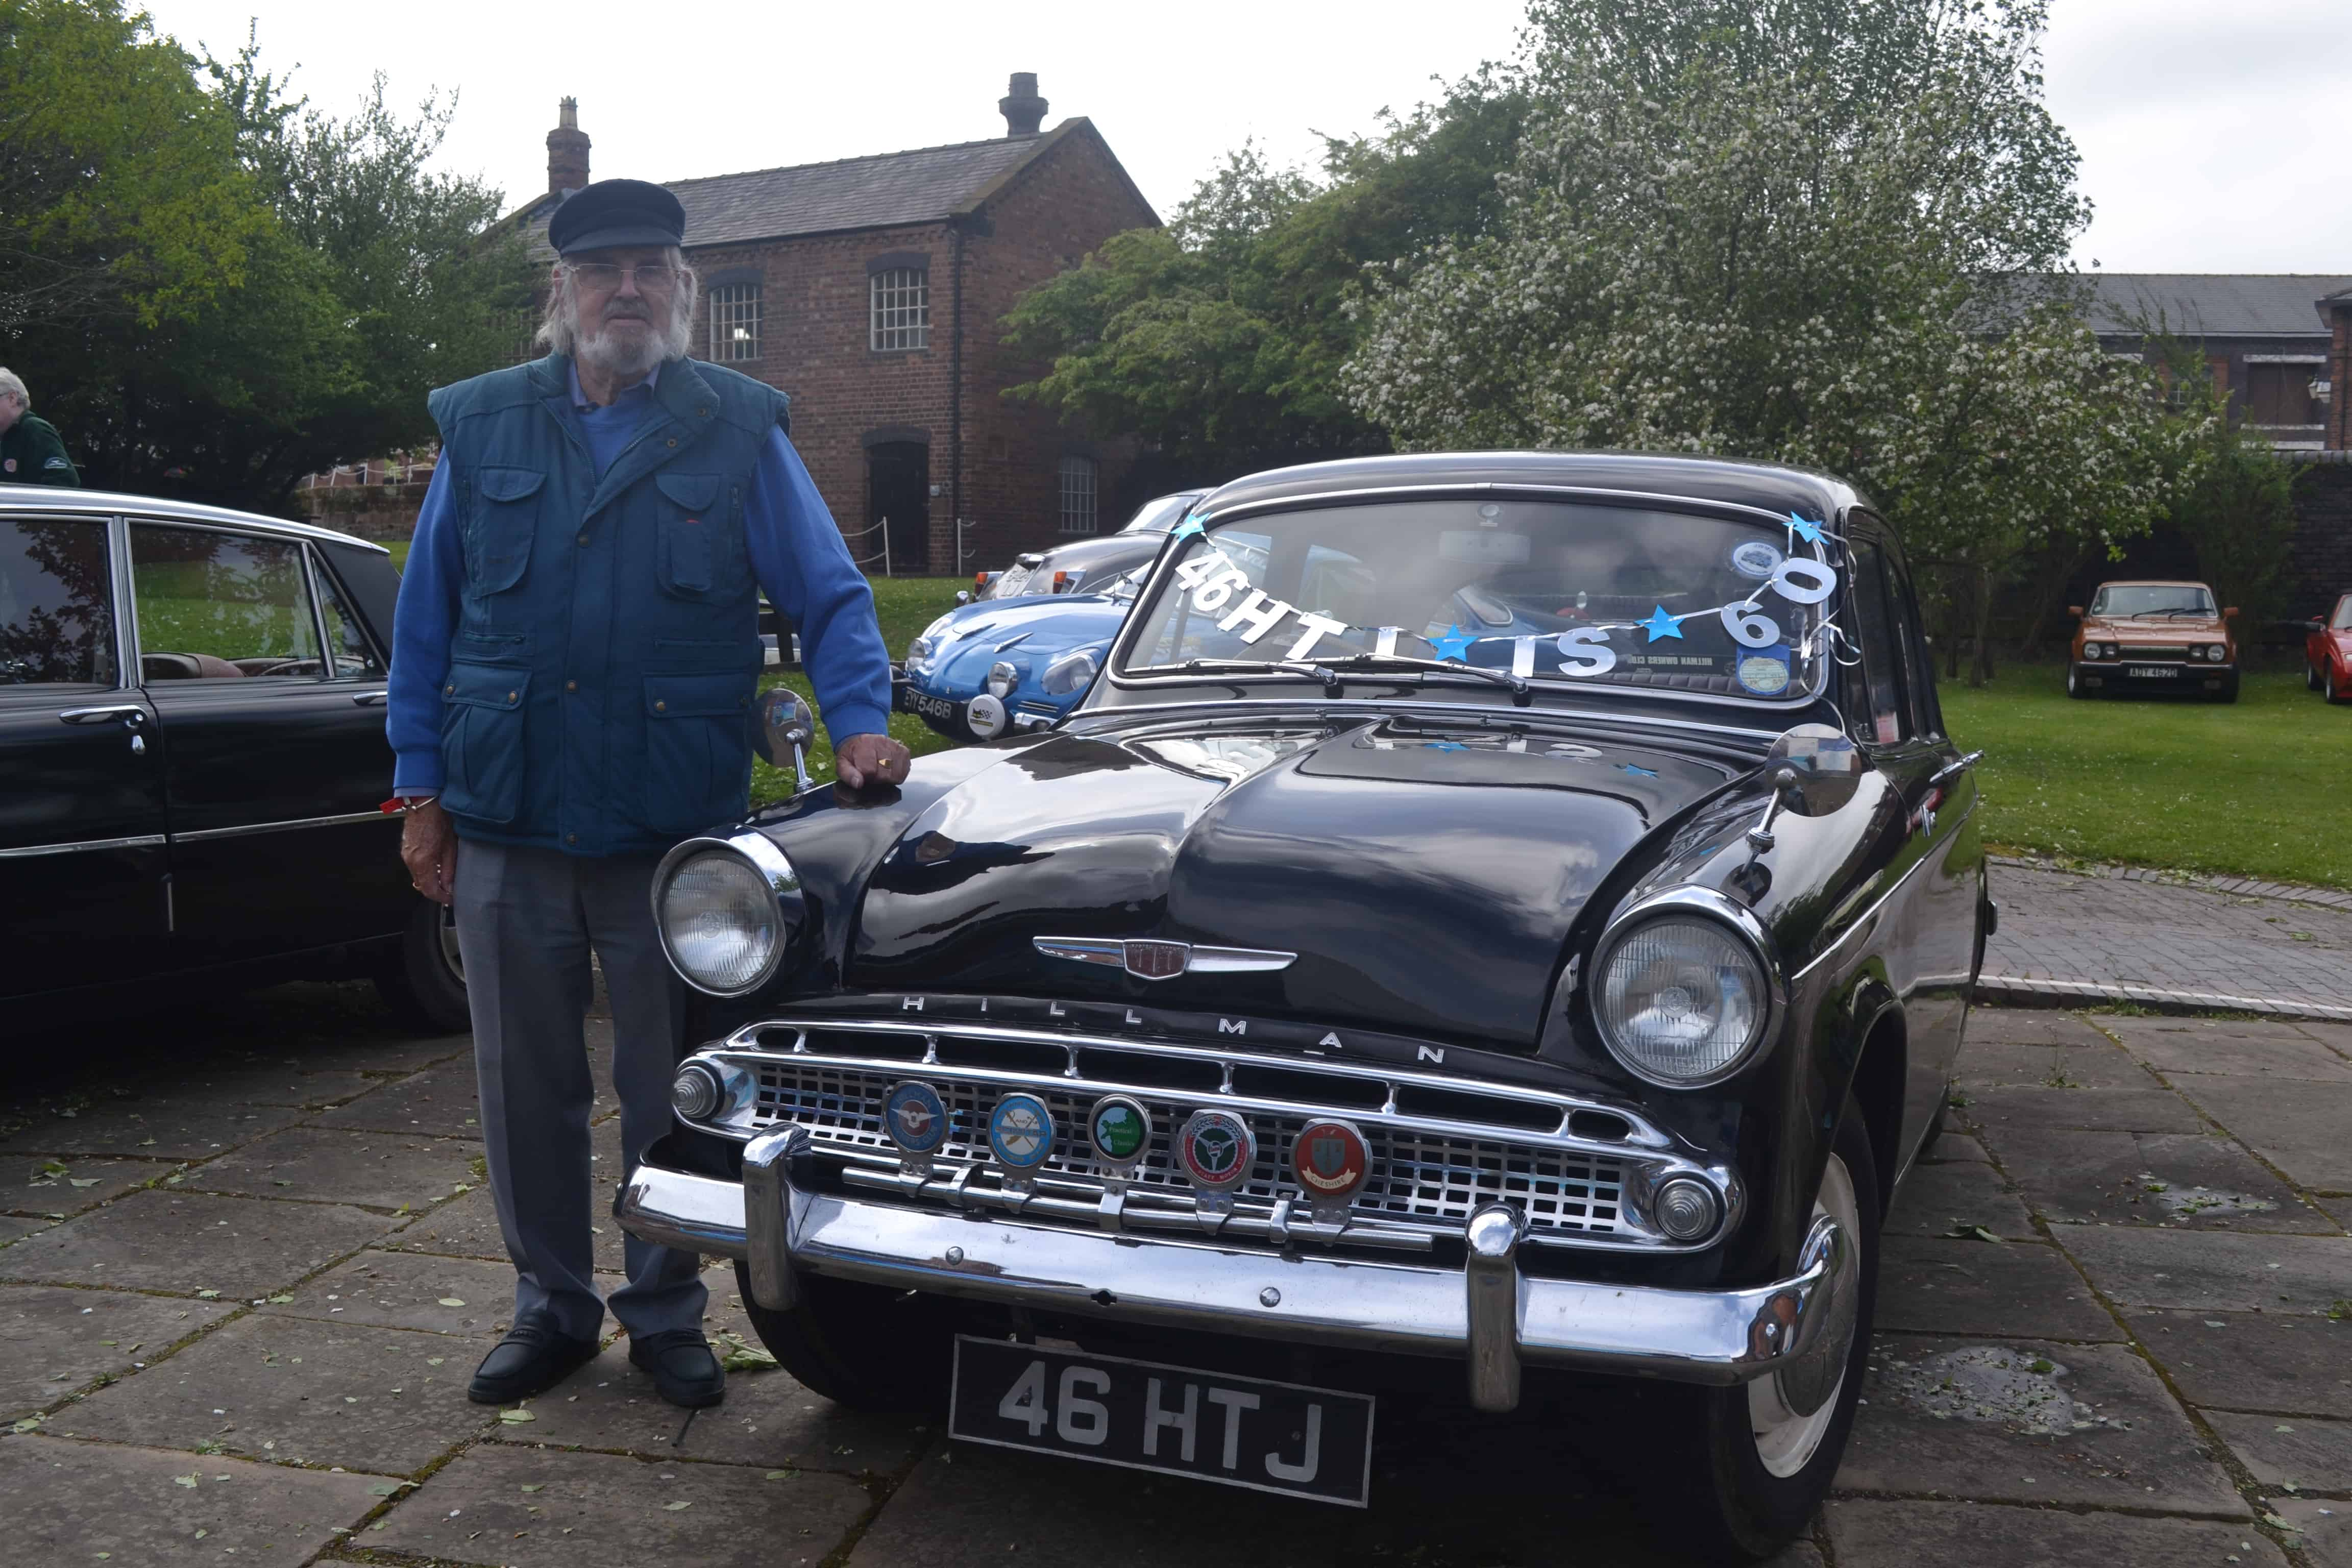 Eric Egertons Hillman Minx '46HTJ' has it's 60th Birthday on the 2019 FBHVC National Drive it Day